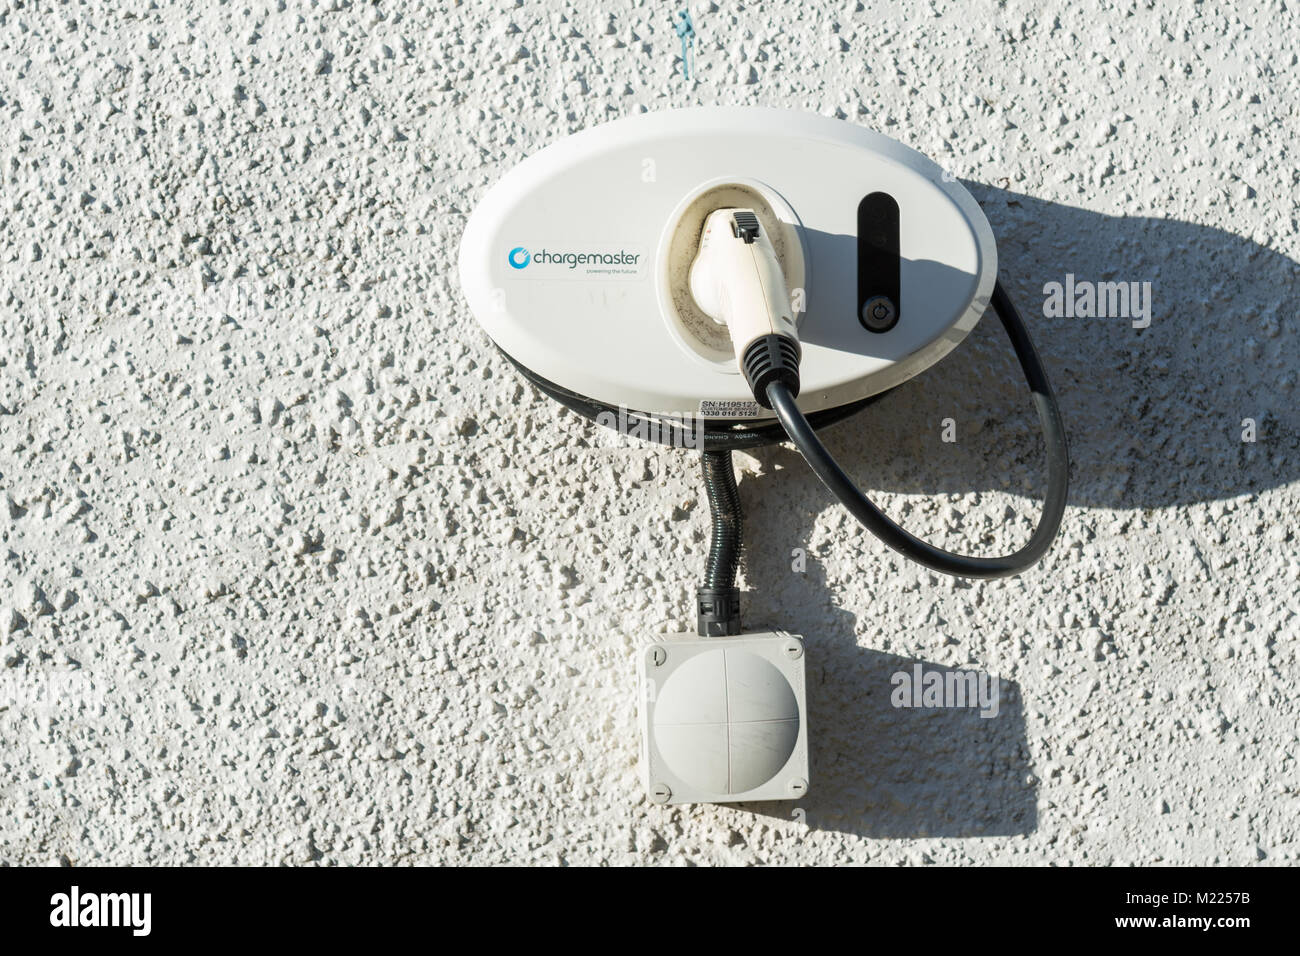 Chargemaster home Electric Car Charger auf Hauswand in Großbritannien Stockbild